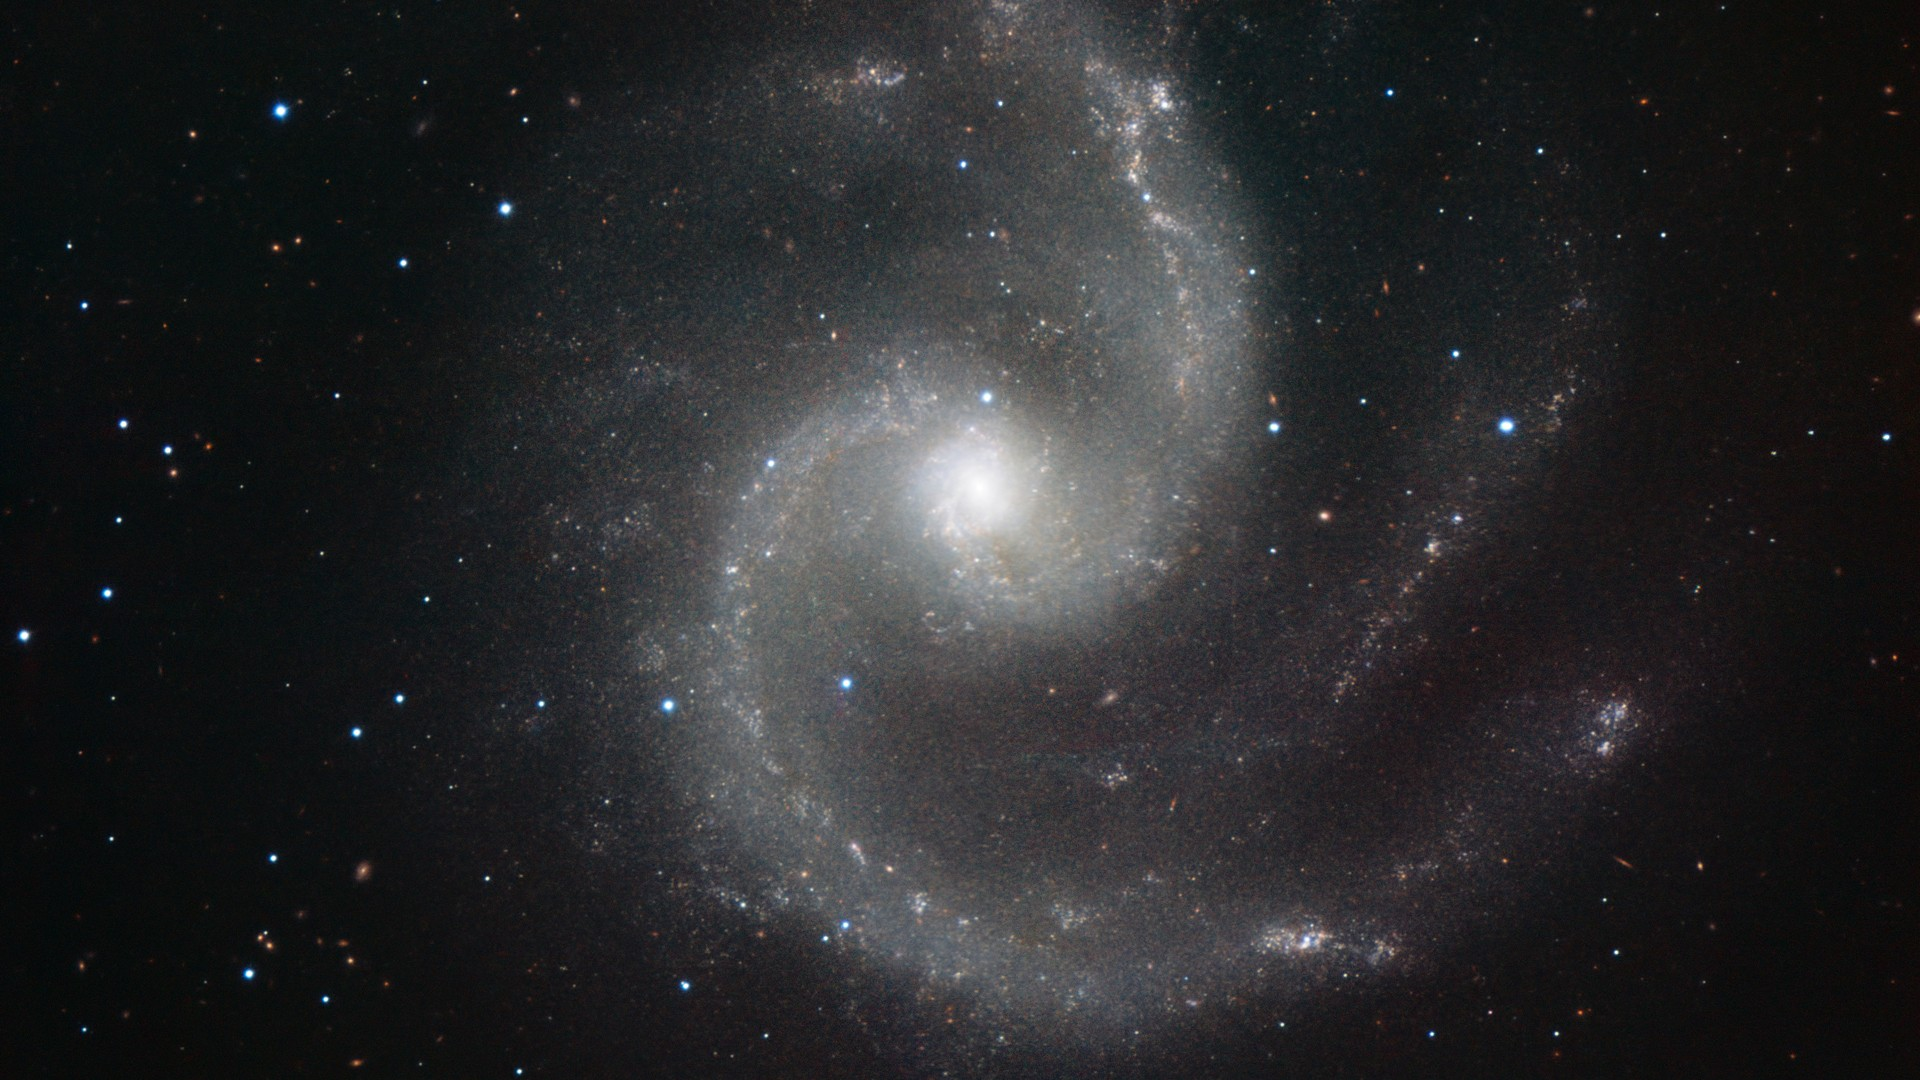 1920x1080 Galaxy in Outer Space desktop PC and Mac wallpaper 1920x1080